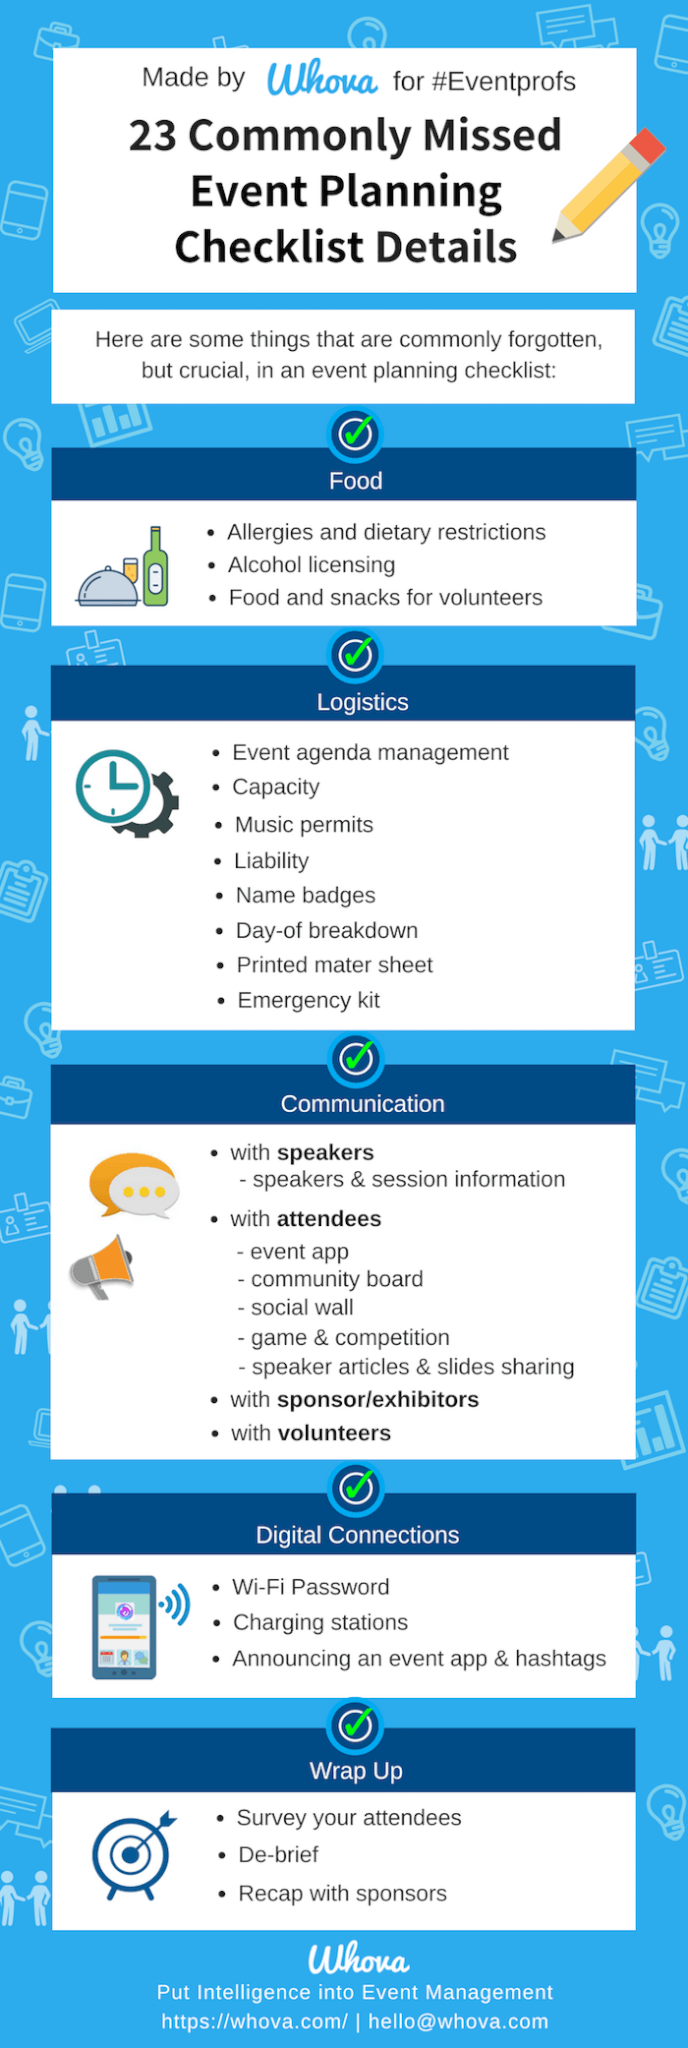 event planning checklist printable 07